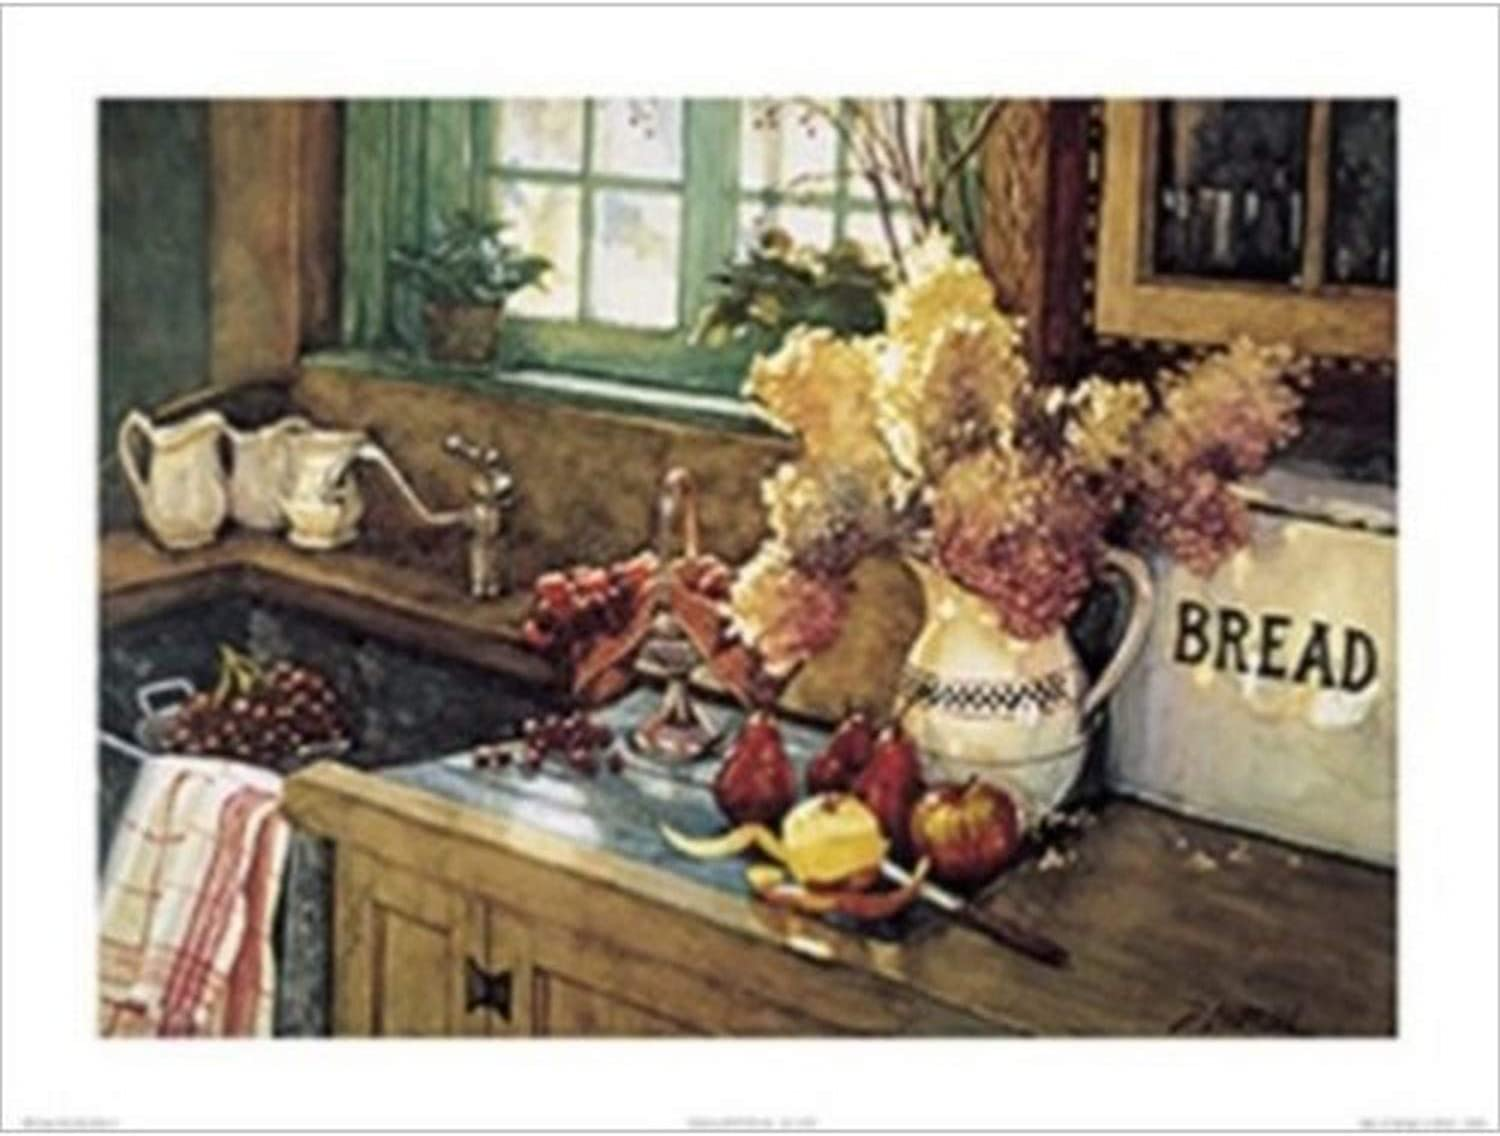 Buyartforless Apples and Hydrangea by Deborah L. Chabrian 24x18 Art Print Poster Vintage Still Life Kitchen Sink Flowers Apples Pears and Grapes